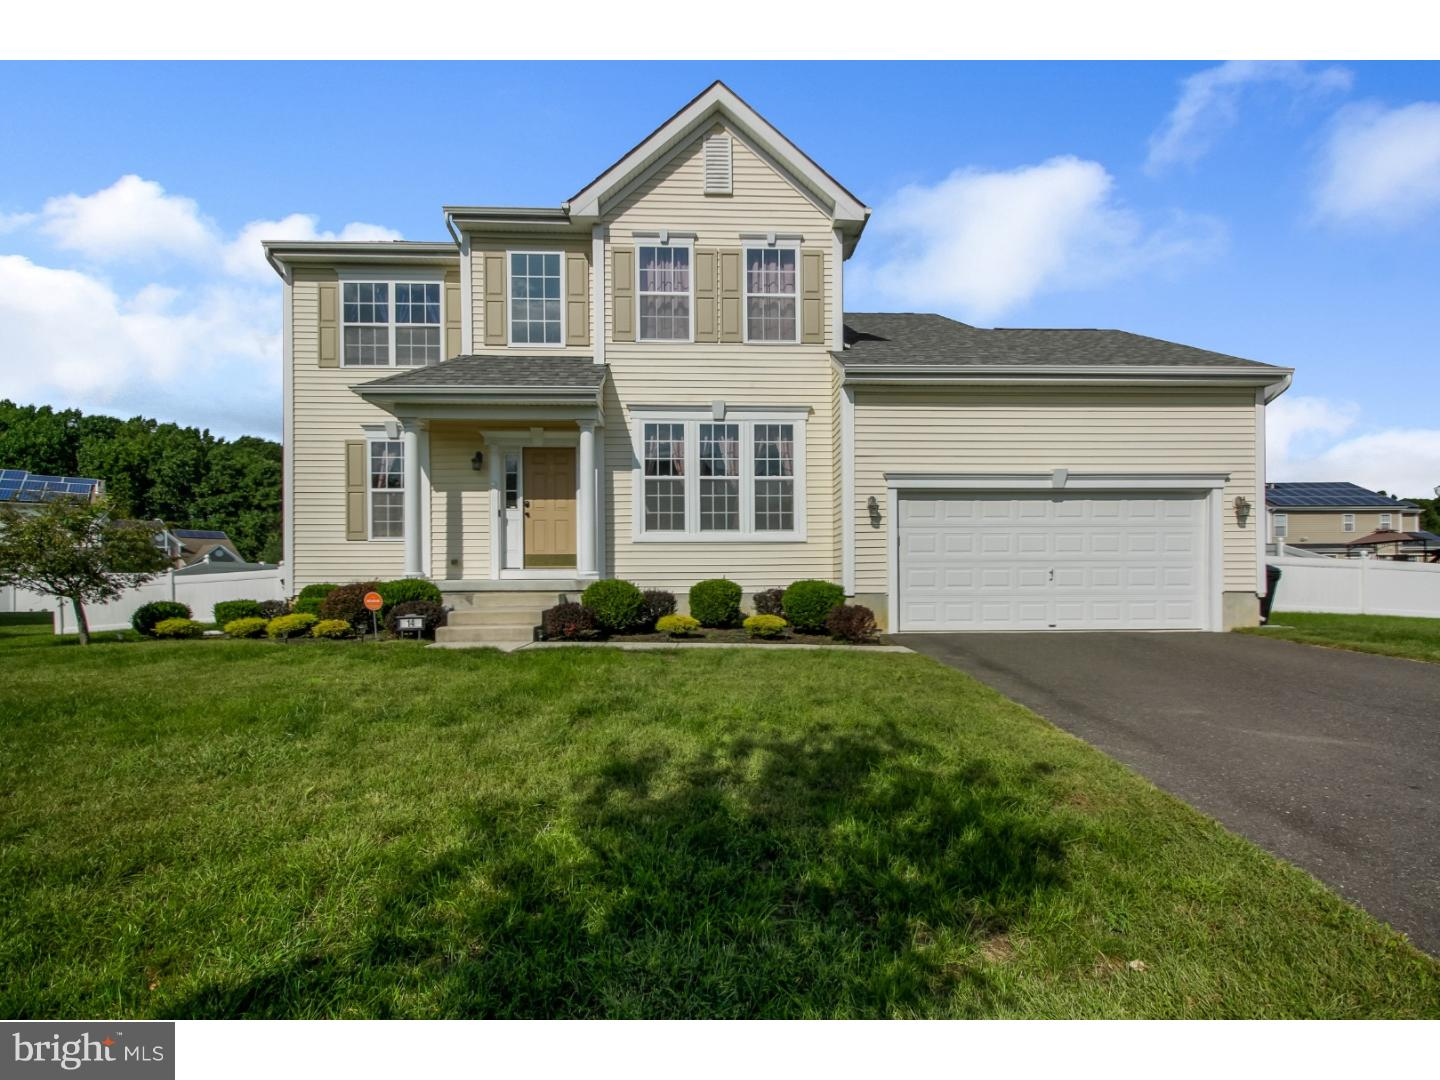 14 HARVEST LANE, PEMBERTON, NJ 08068